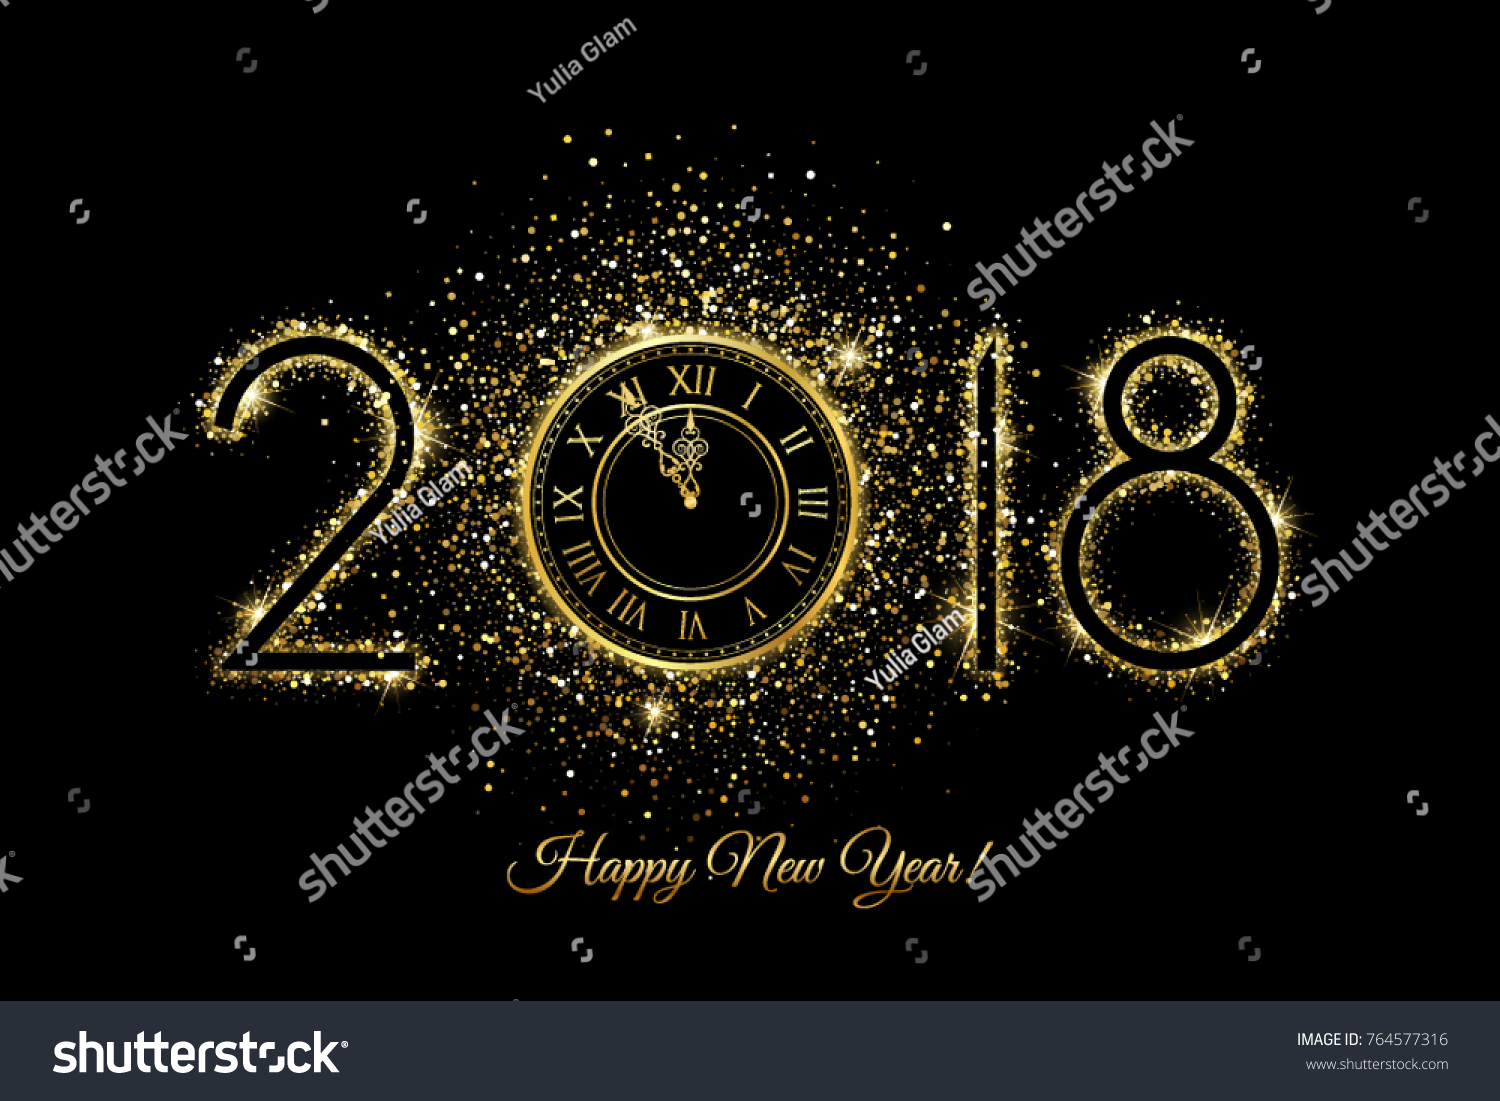 happy new year 2018 vector new year background with gold clock on black